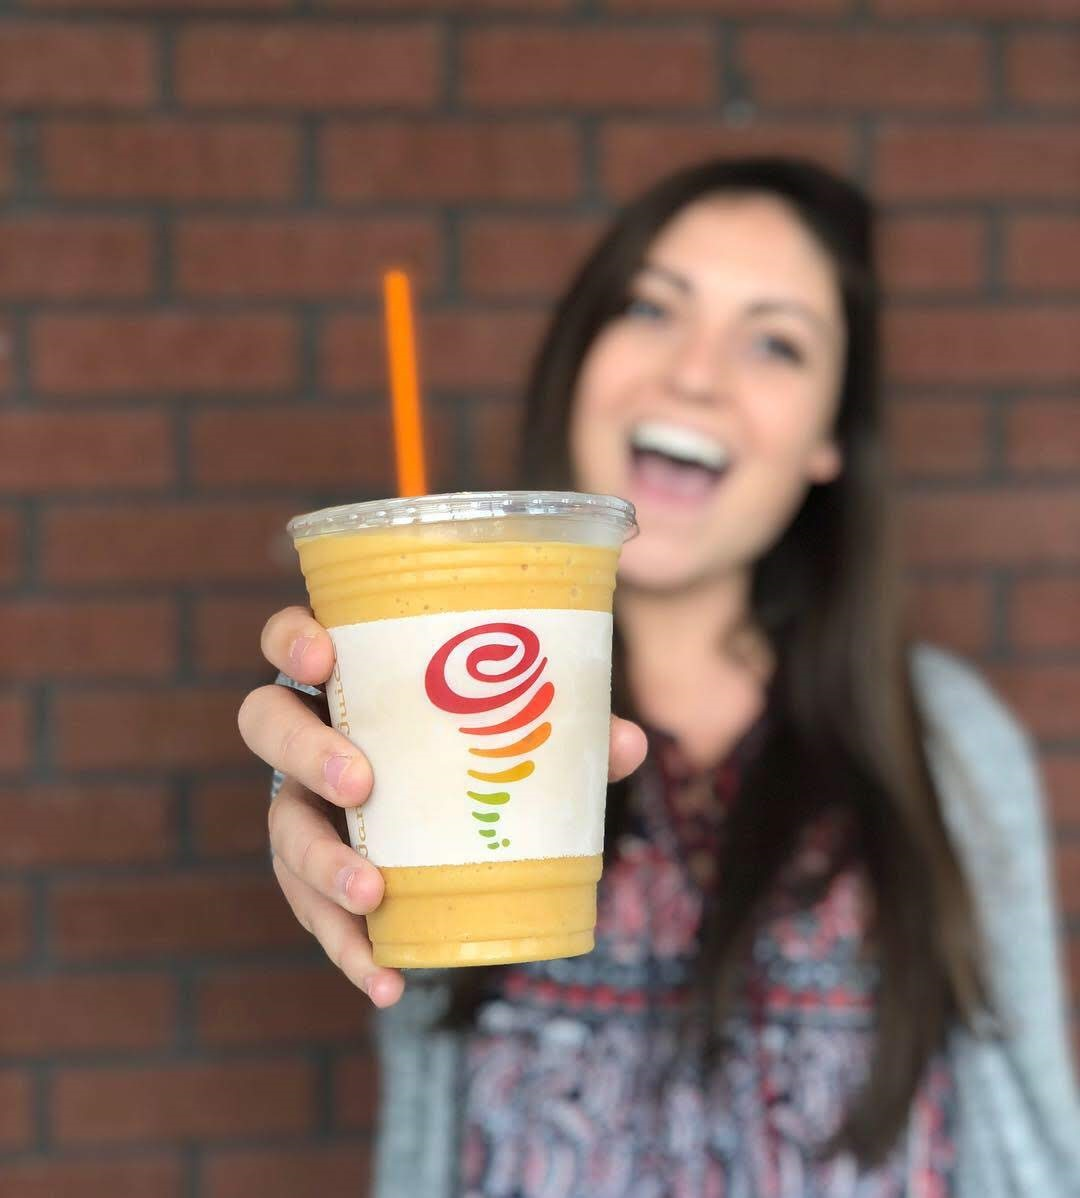 An orange smoothie from Jamba